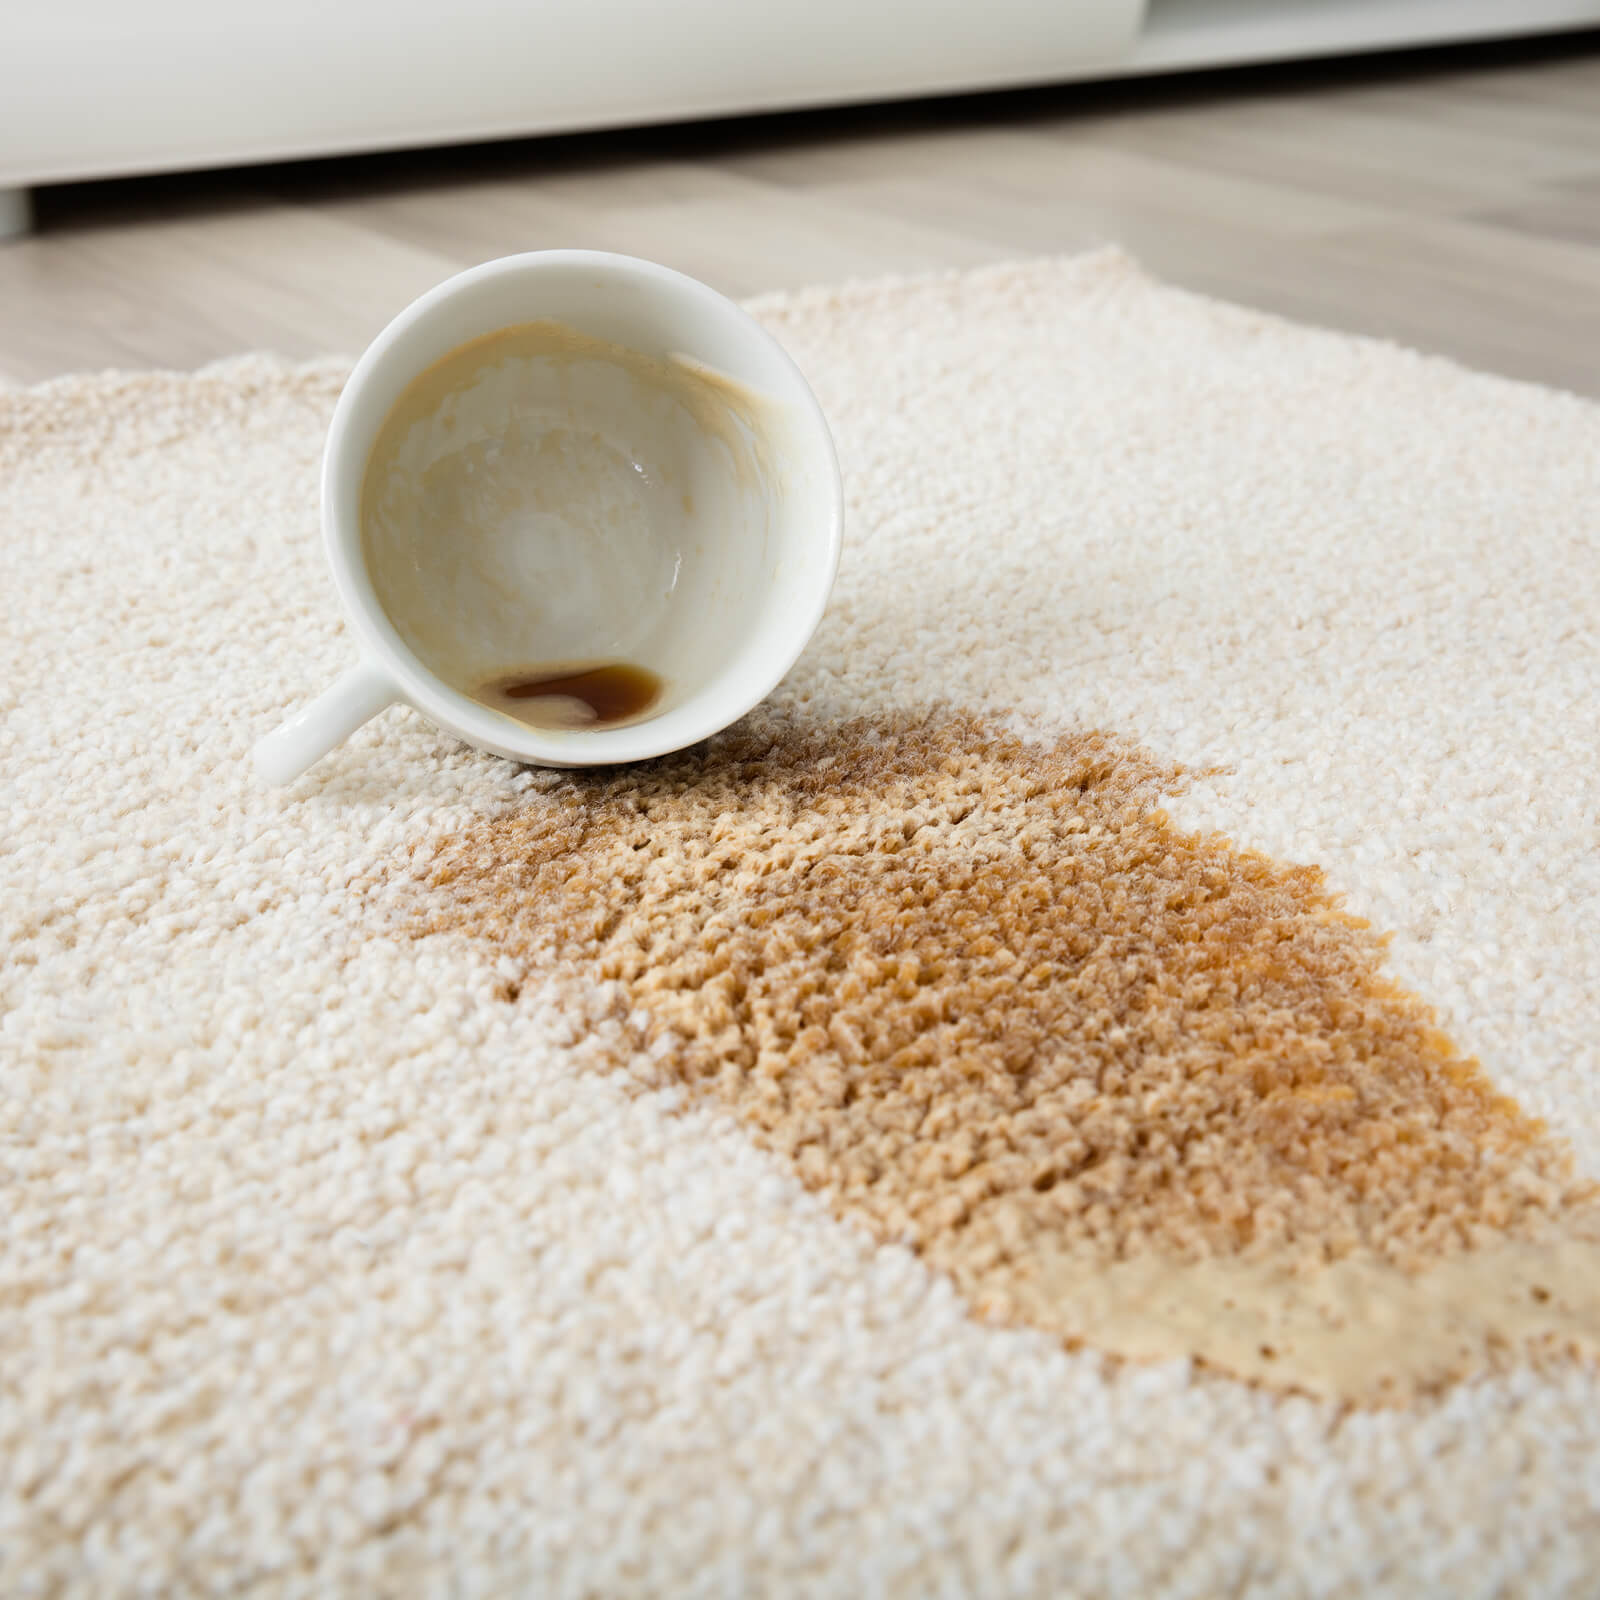 Coffee spill on area rug | Markville Carpet & Flooring